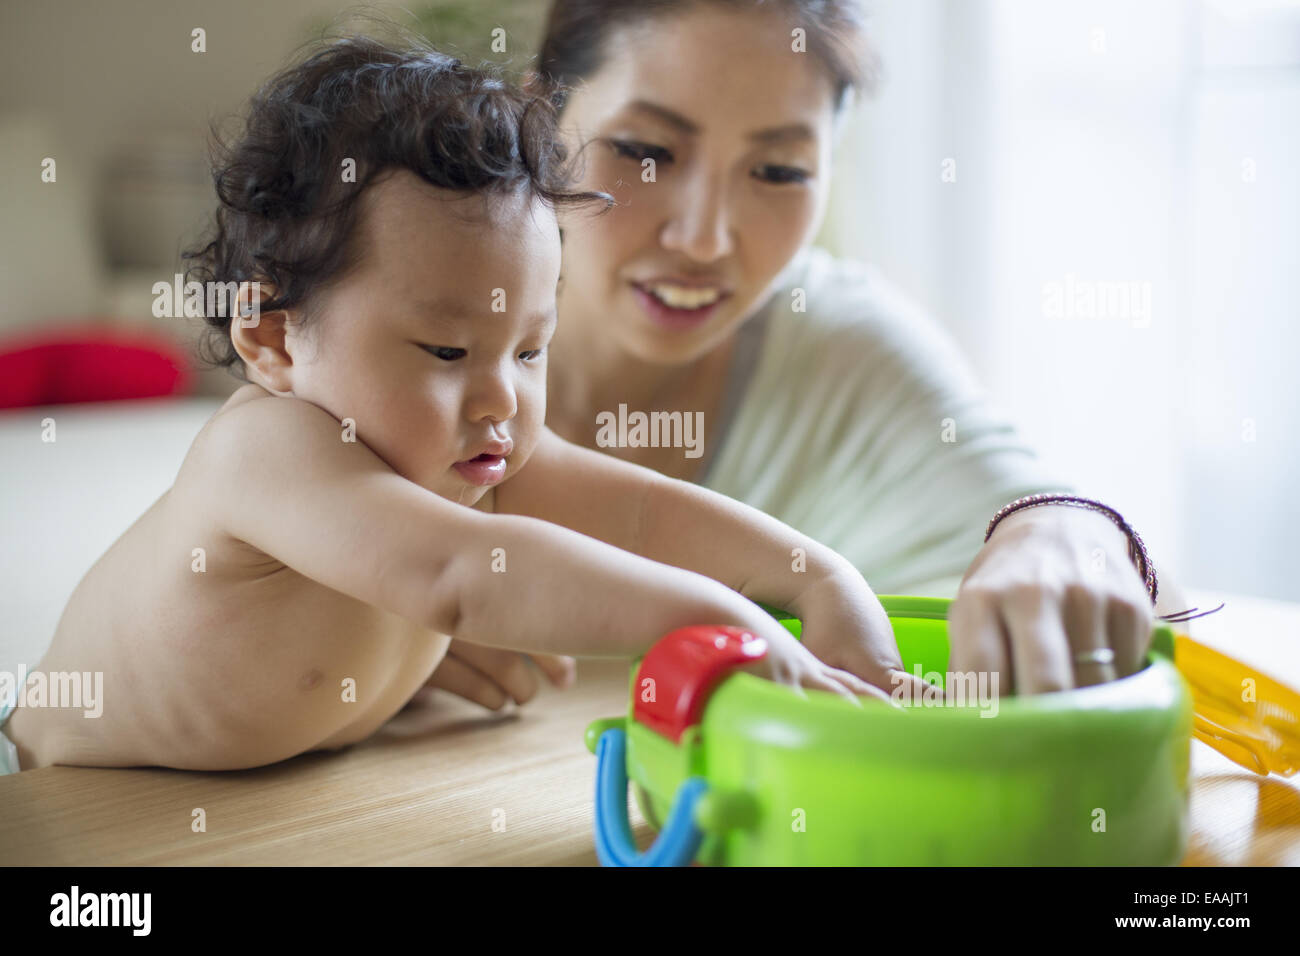 Mother playing with her baby boy. - Stock Image